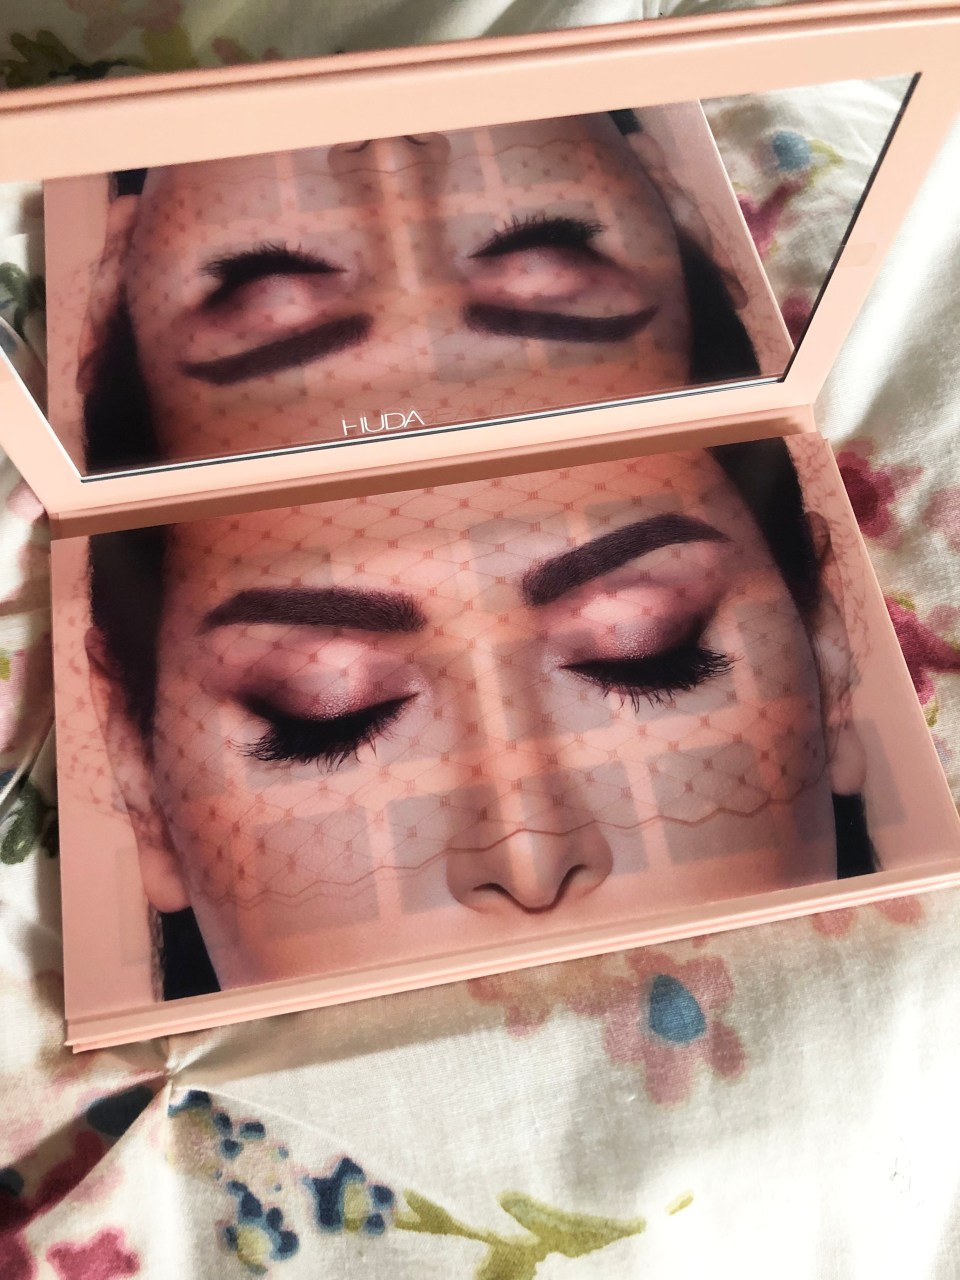 Huda Beauty - New Nude 2